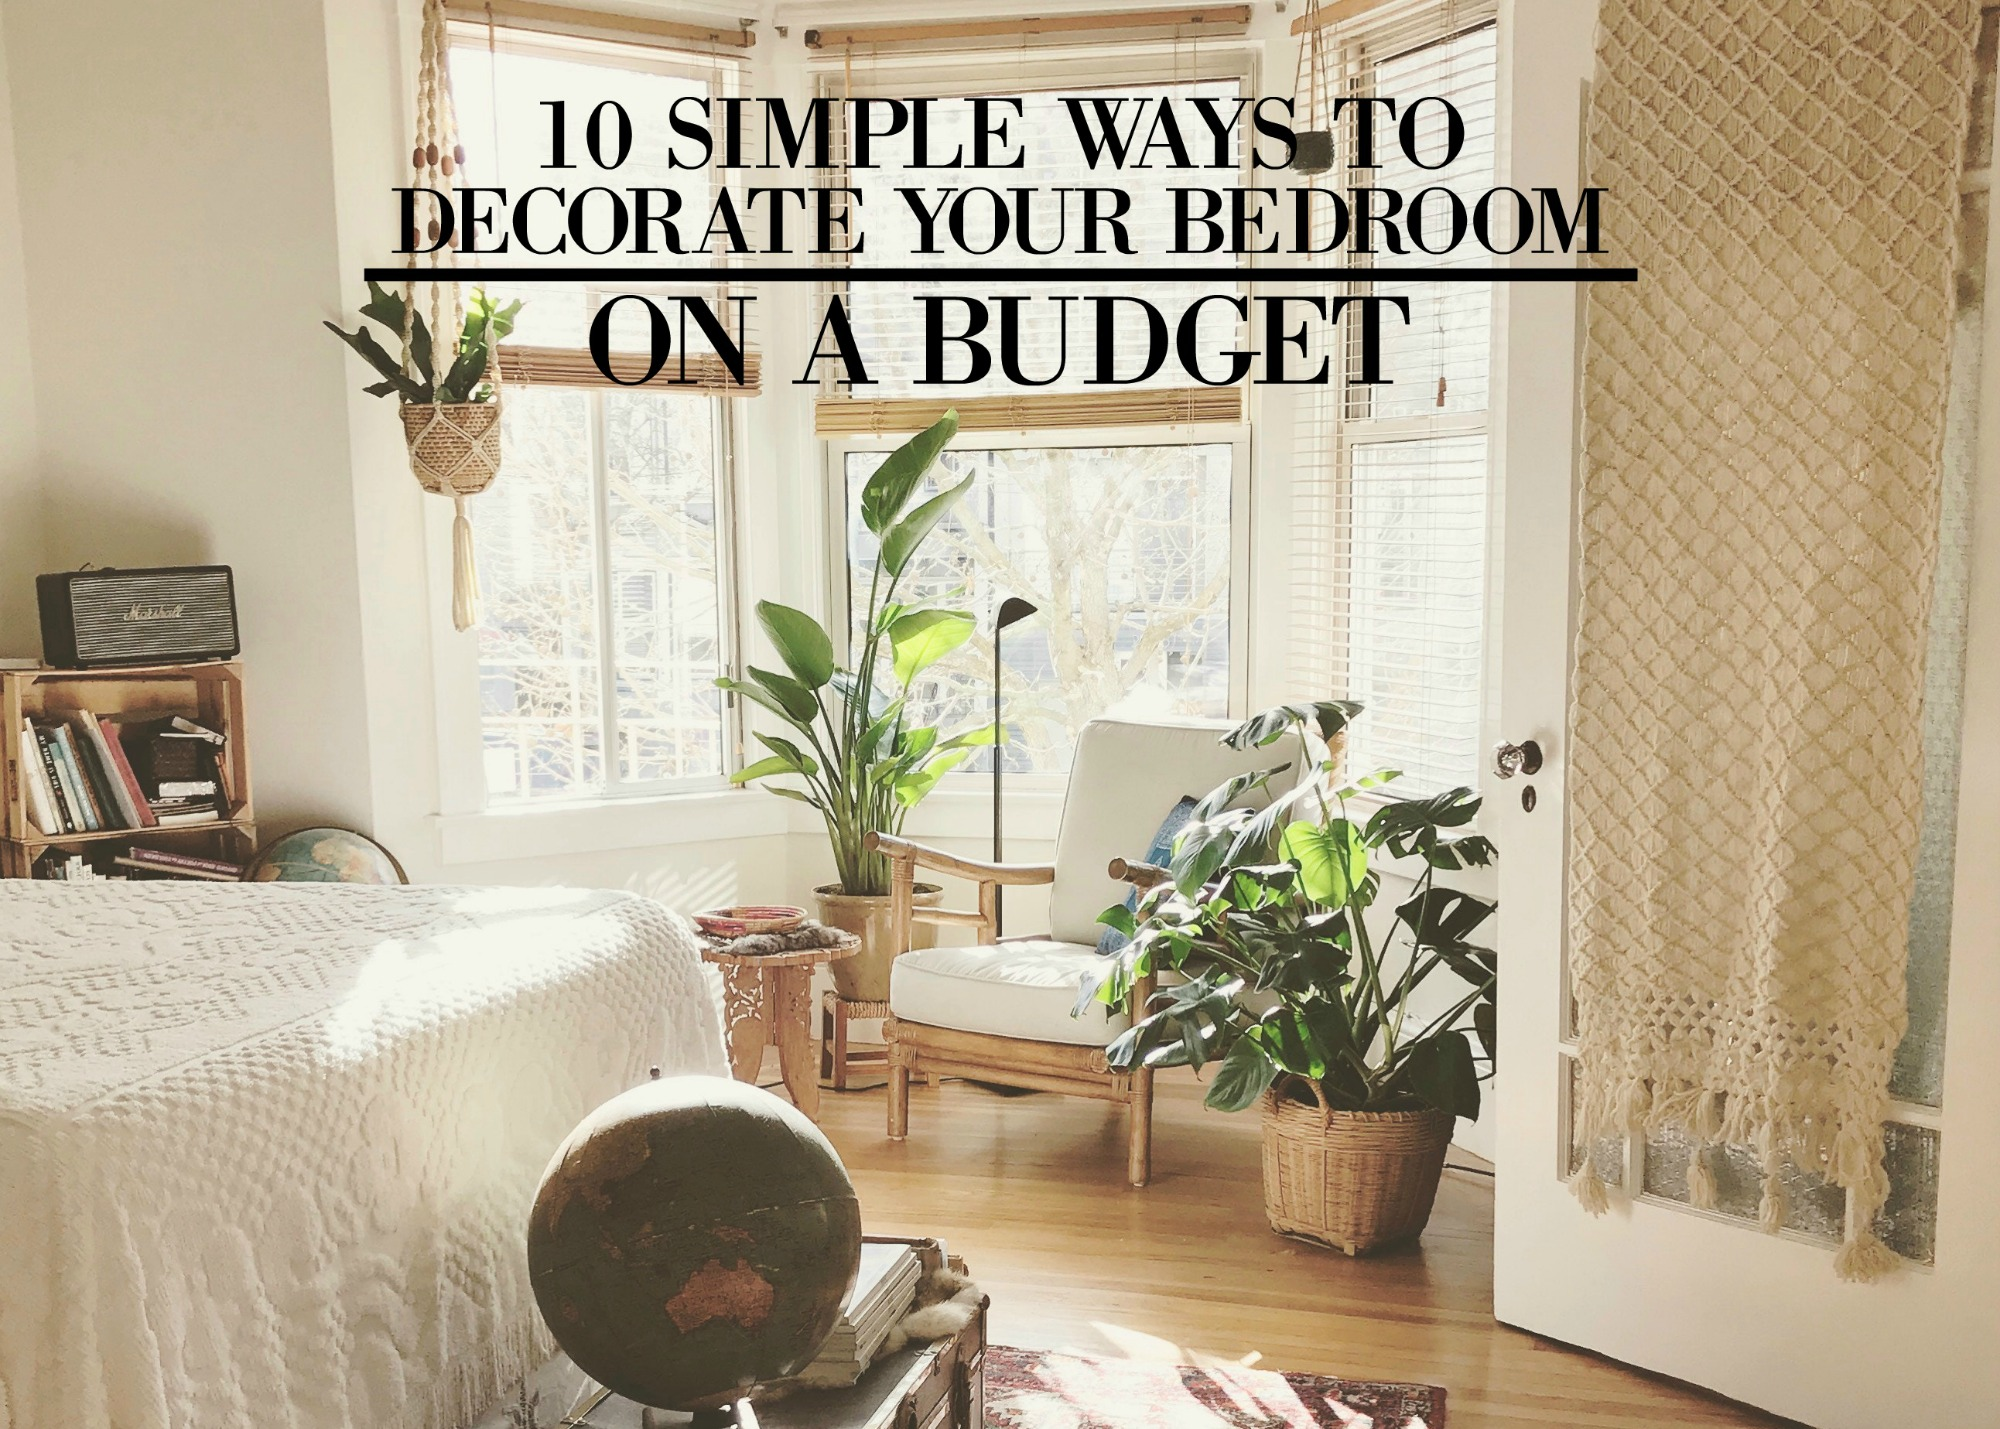 10 simple ways to decorate your bedroom on a budget - Decorating on a budget ...